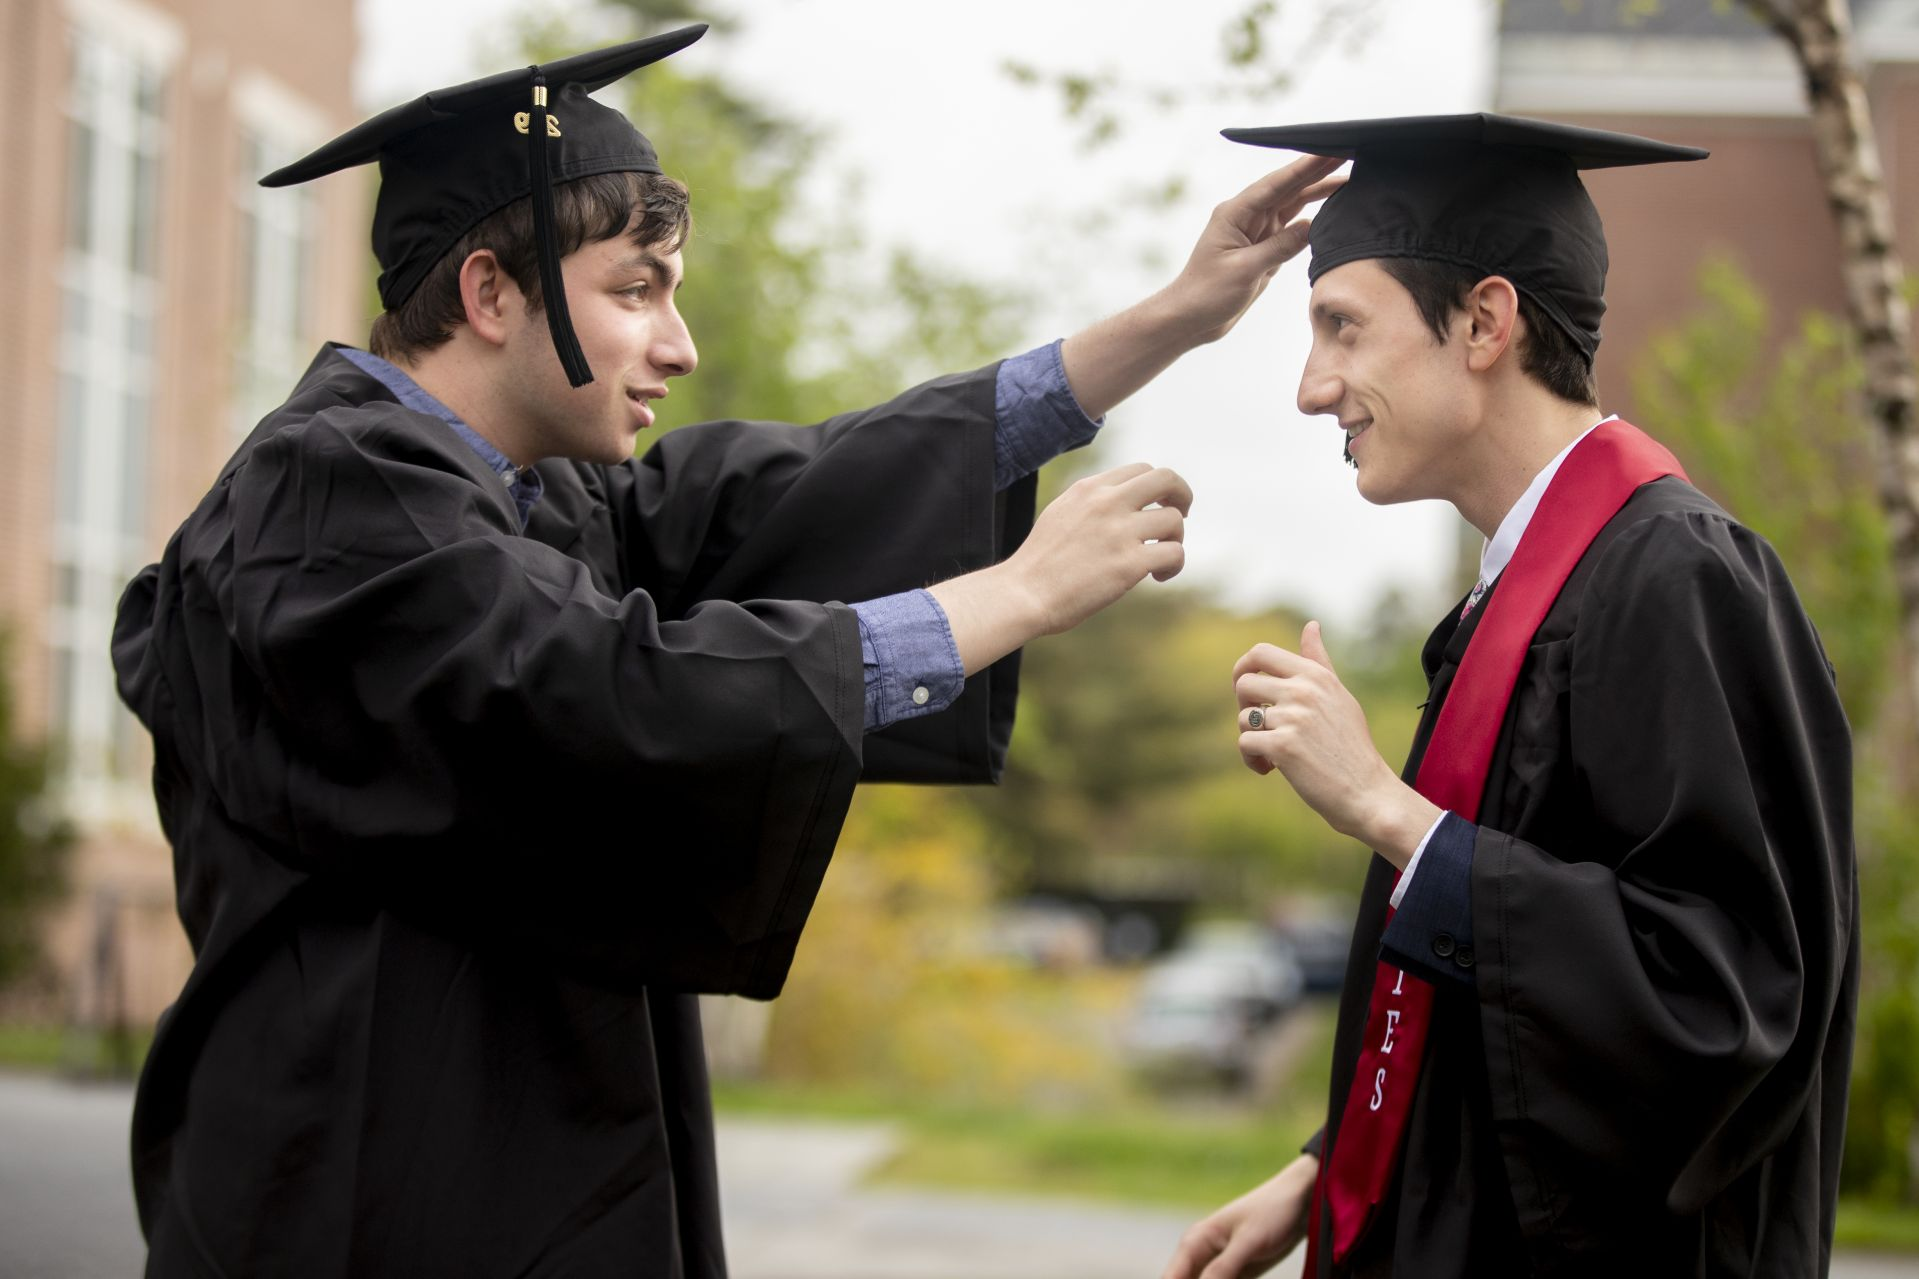 The first seniors on Alumni Walk on Commencement Day, David Unterberger (left) and Nicholas Damianos check each other's cap alignment. (Phyllis Graber Jensen/Bates College)